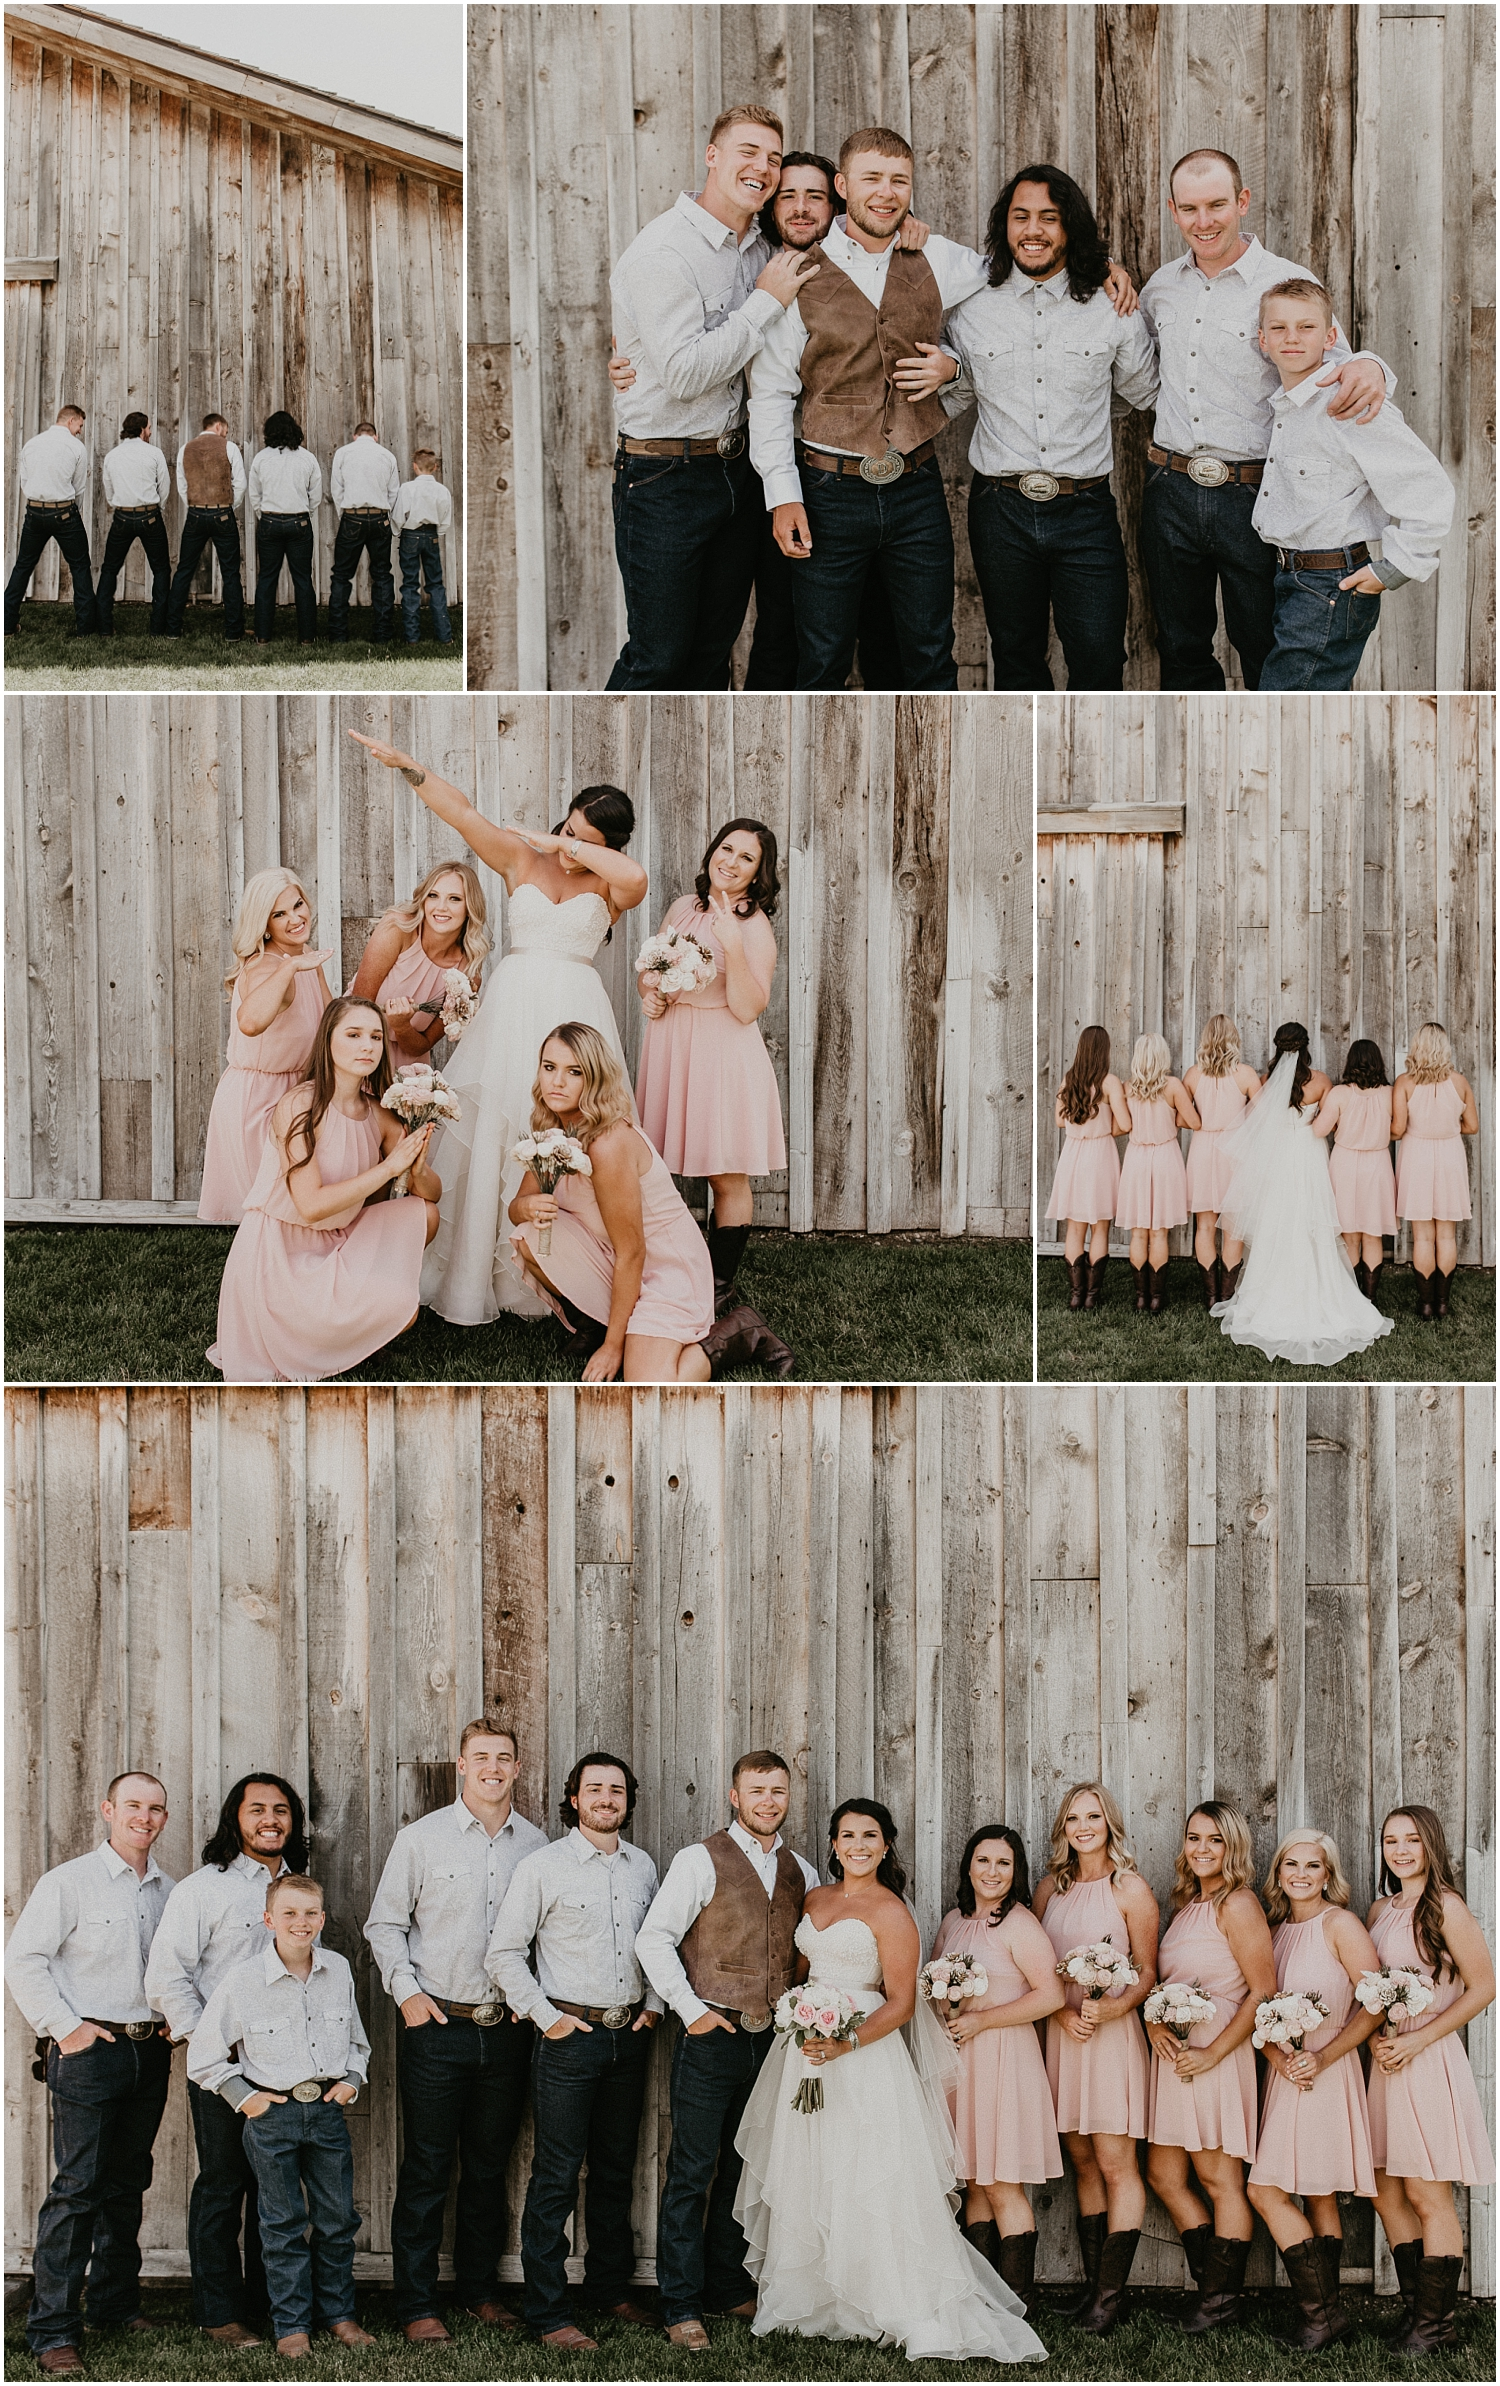 Boise Wedding Photographer Makayla Madden Photography Idaho Bride Boise Country Chic Wedding Still Water Hollow Boise Wedding Venue Boots Rustic Wedding inpsiration Bridal Party